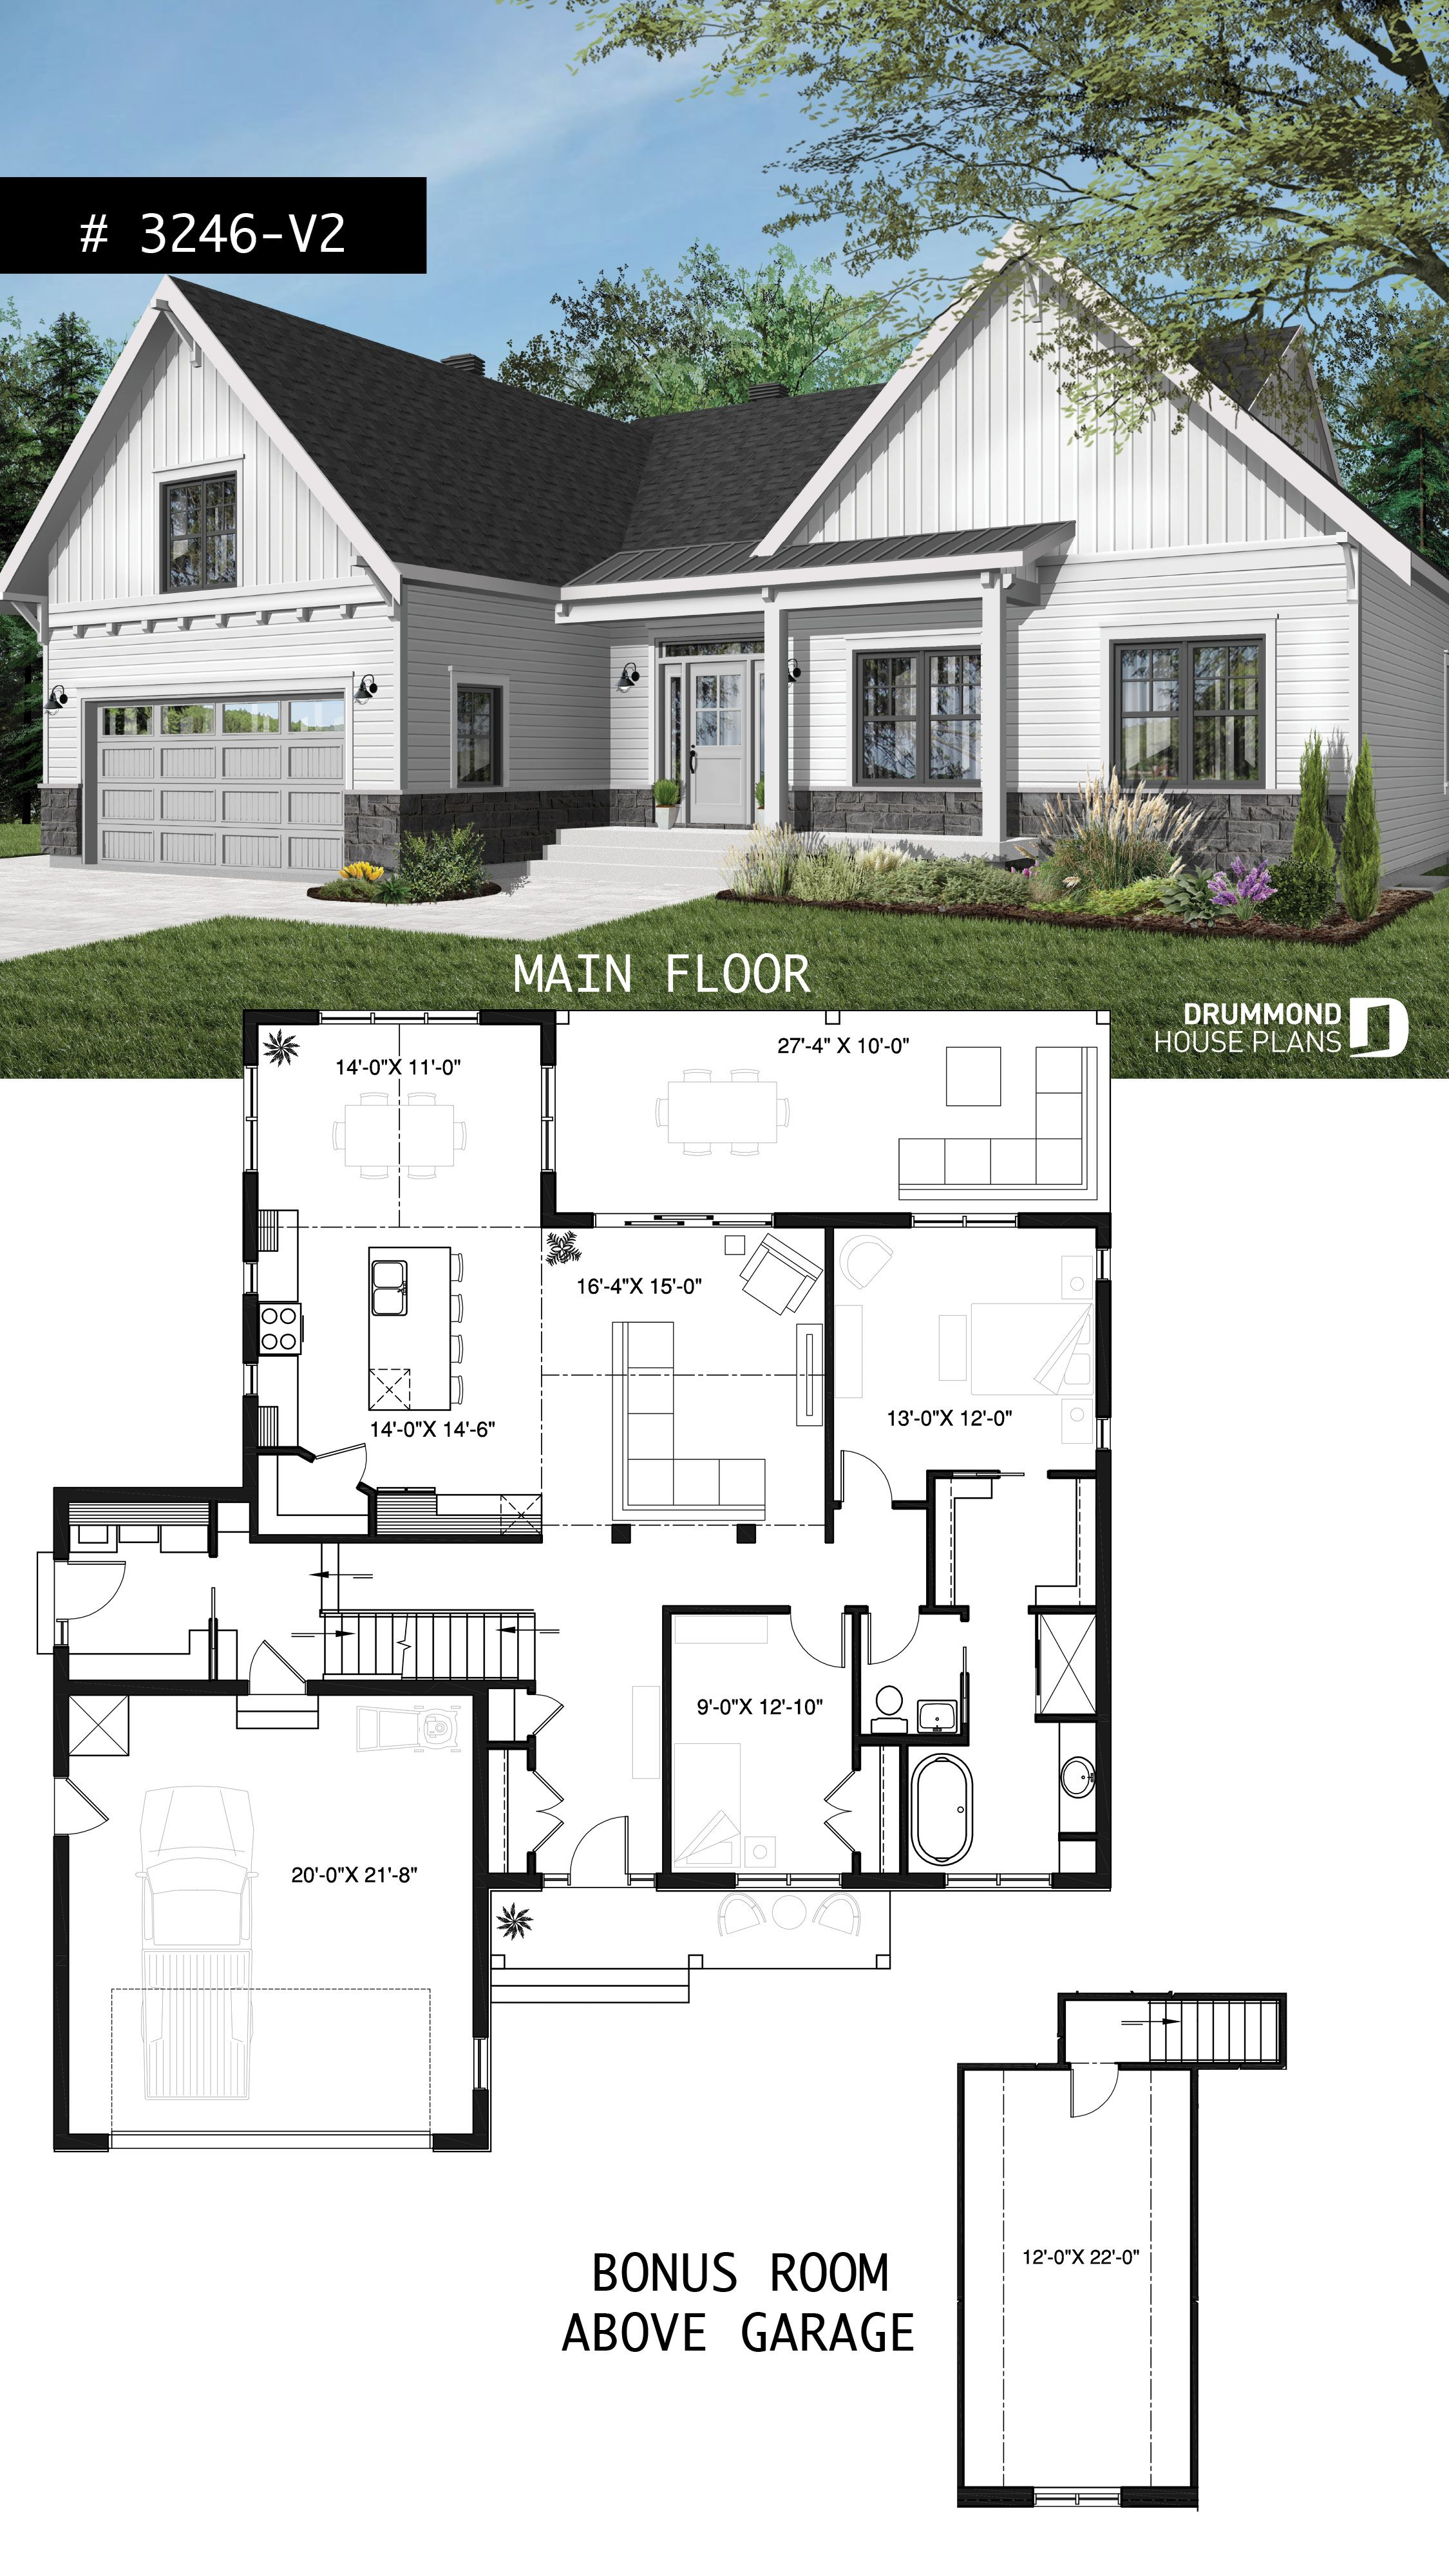 Onestorey ranch house plan with car garage large kitchen with